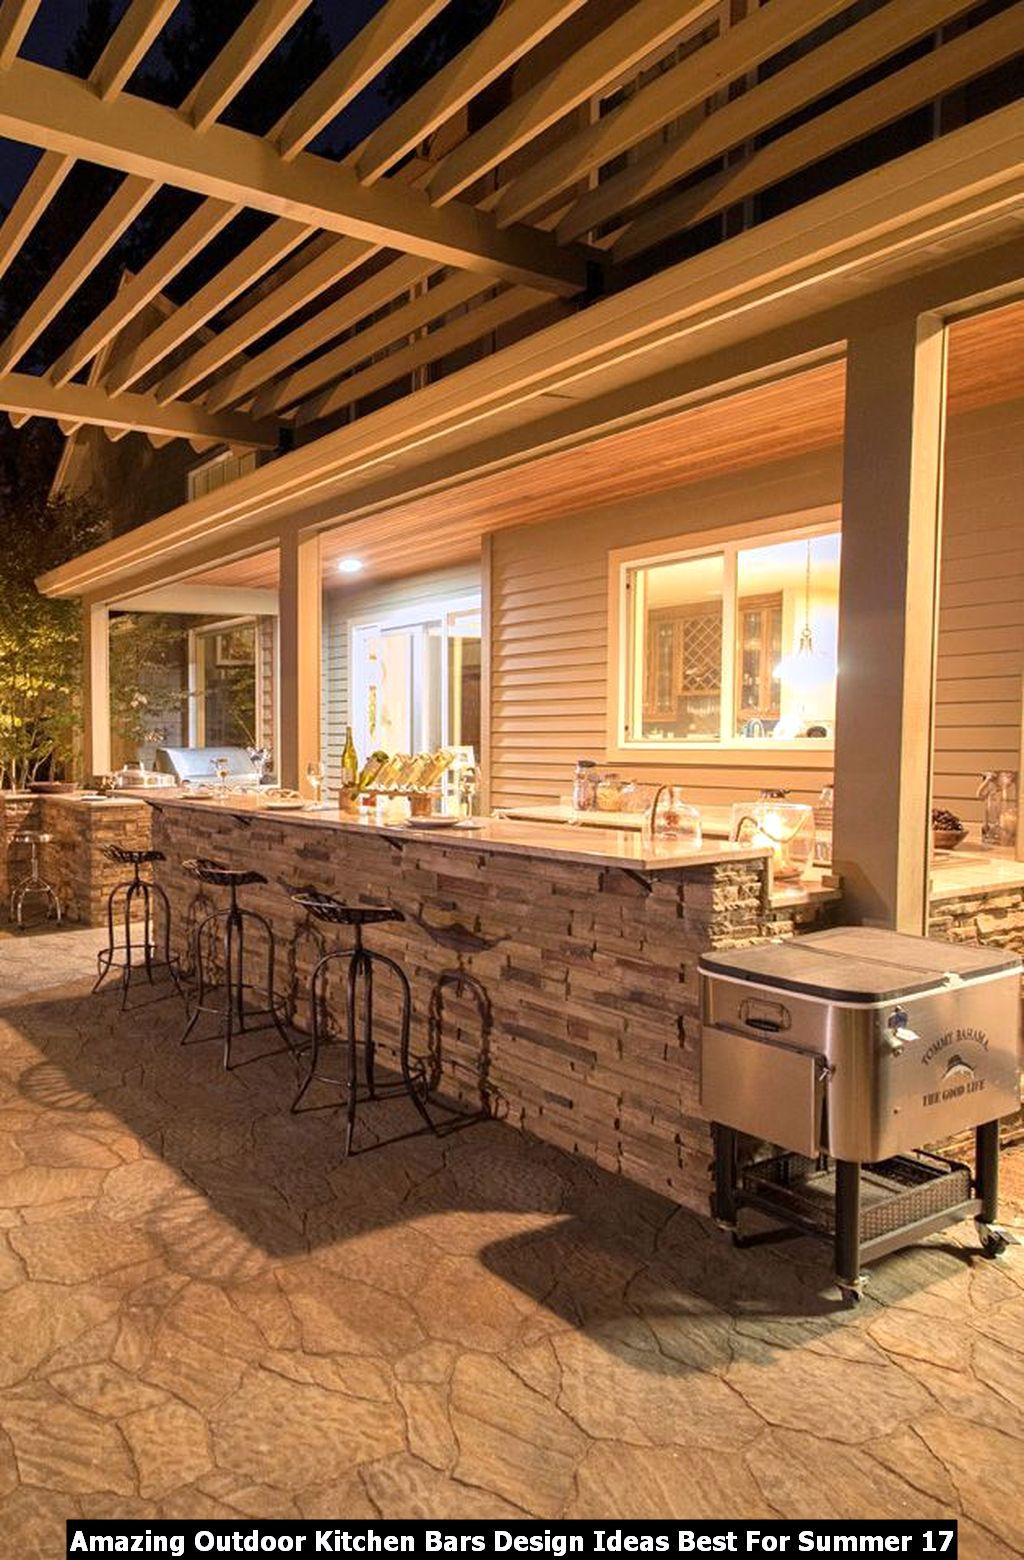 Amazing Outdoor Kitchen Bars Design Ideas Best For Summer 17